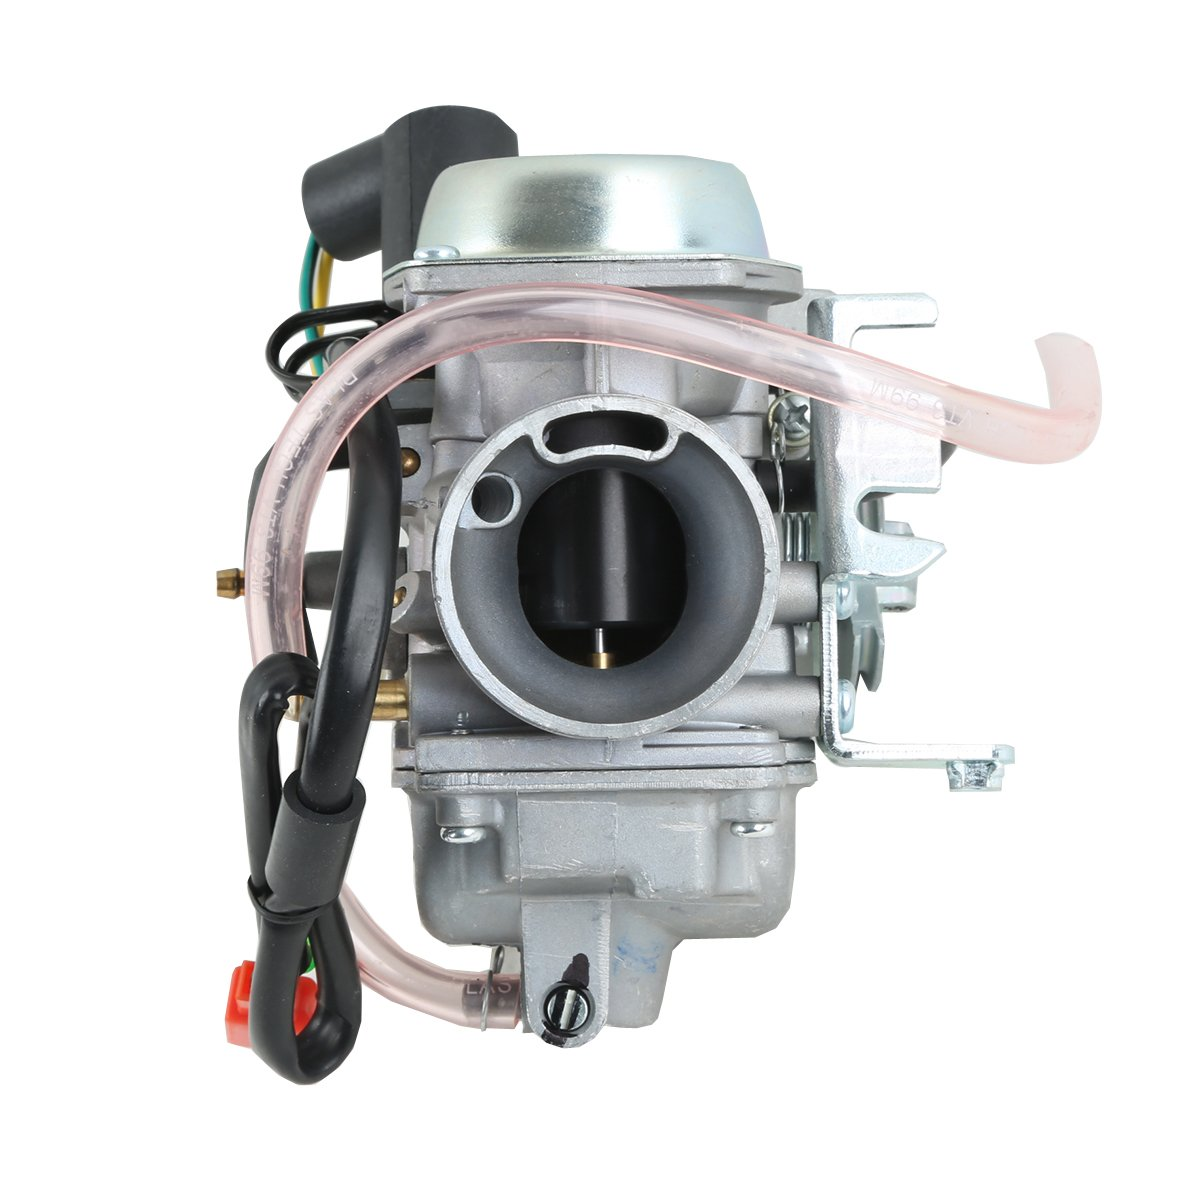 ATV Intake Fuel Systems